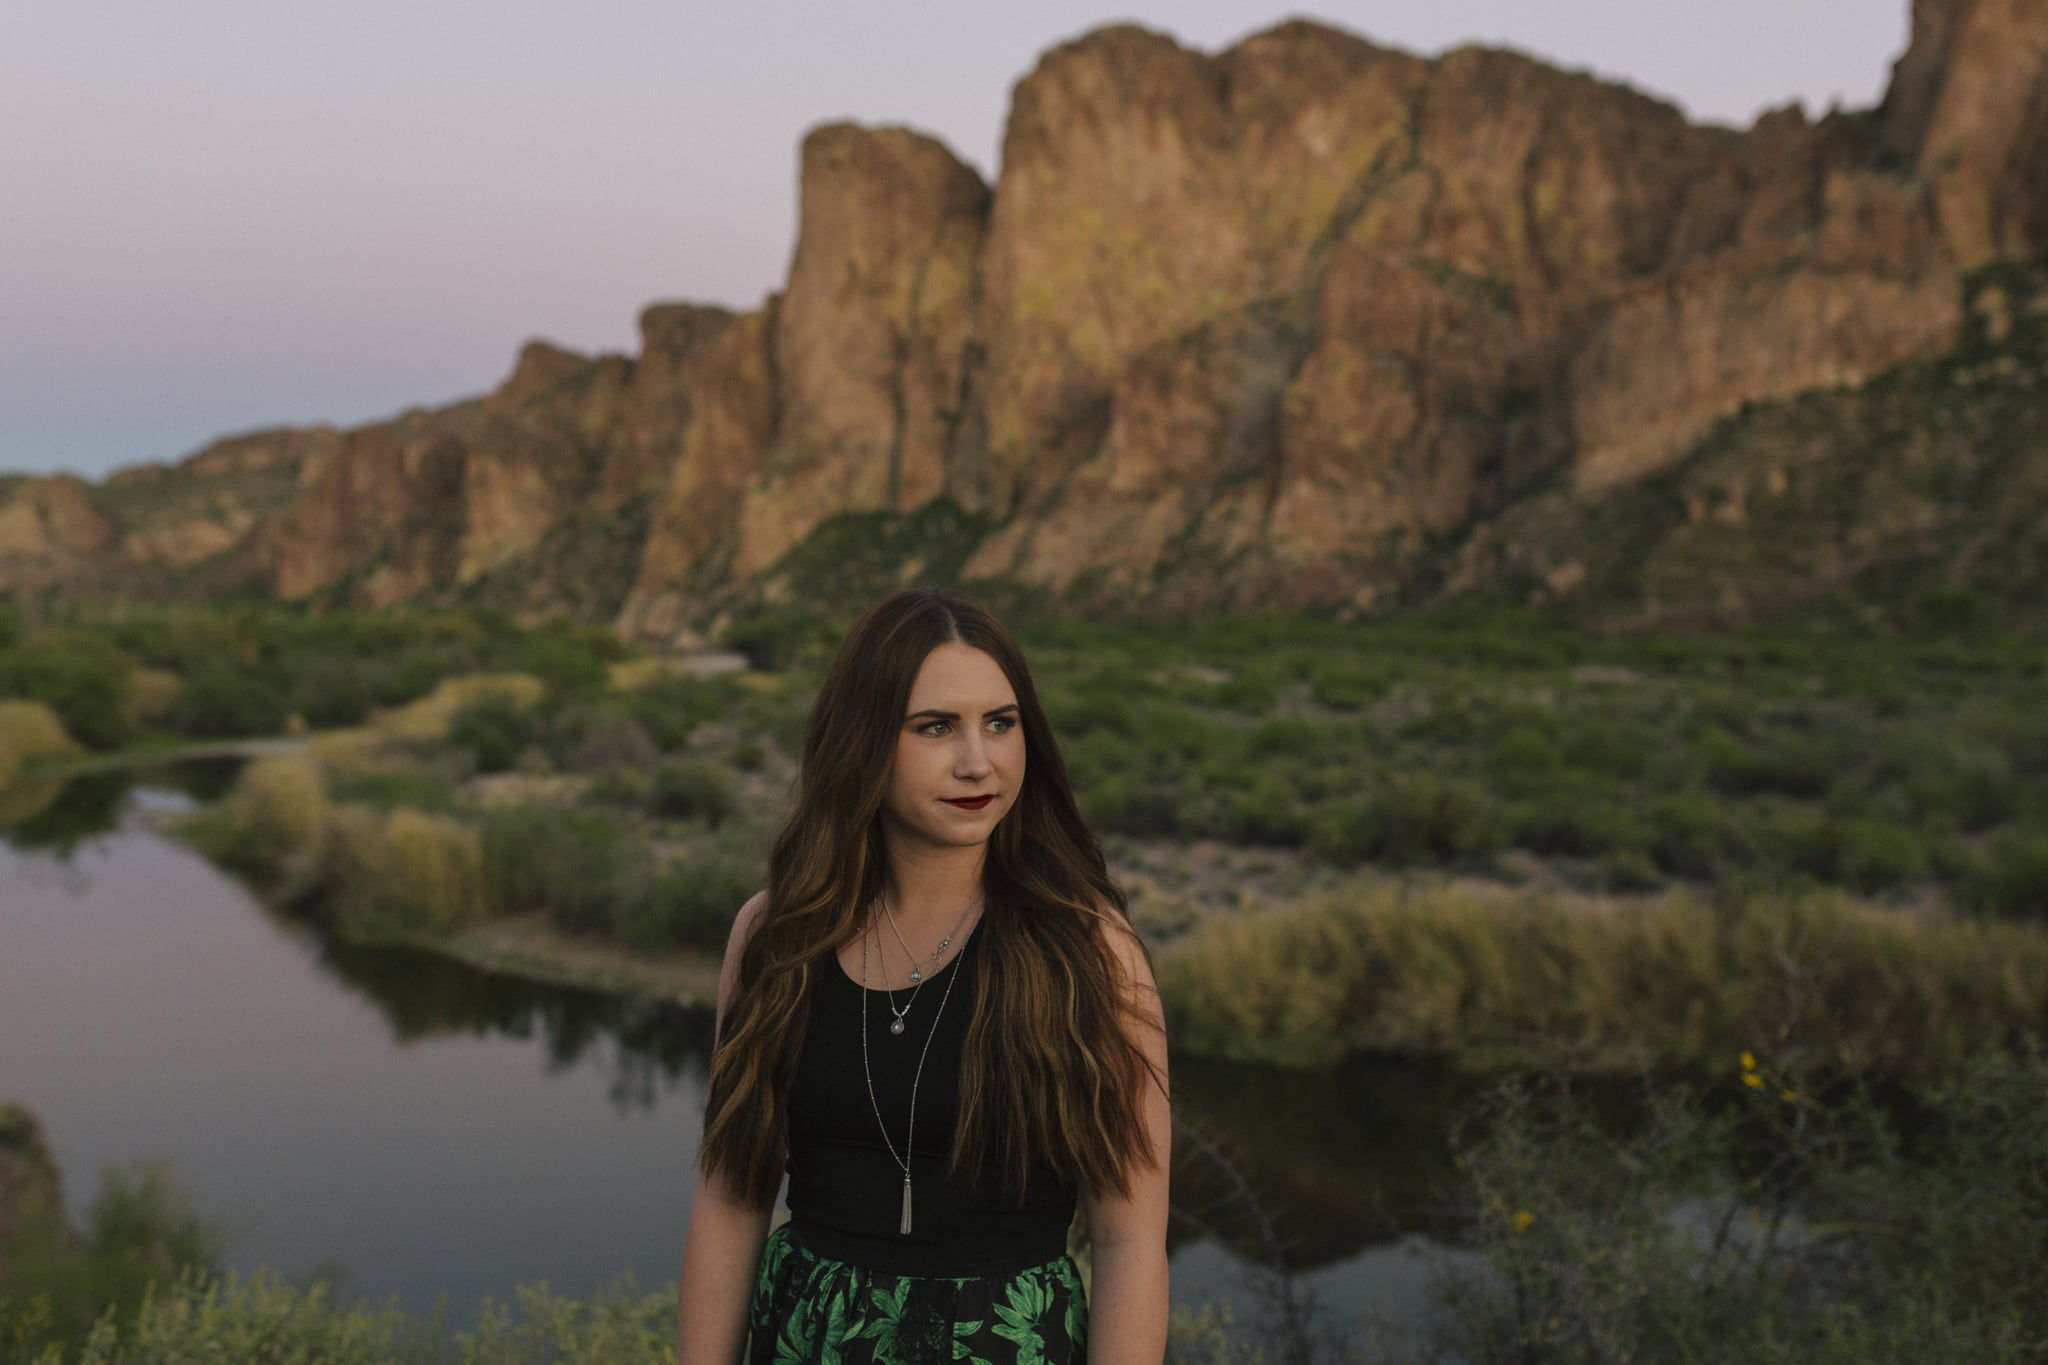 Arizona senior portraits outdoors